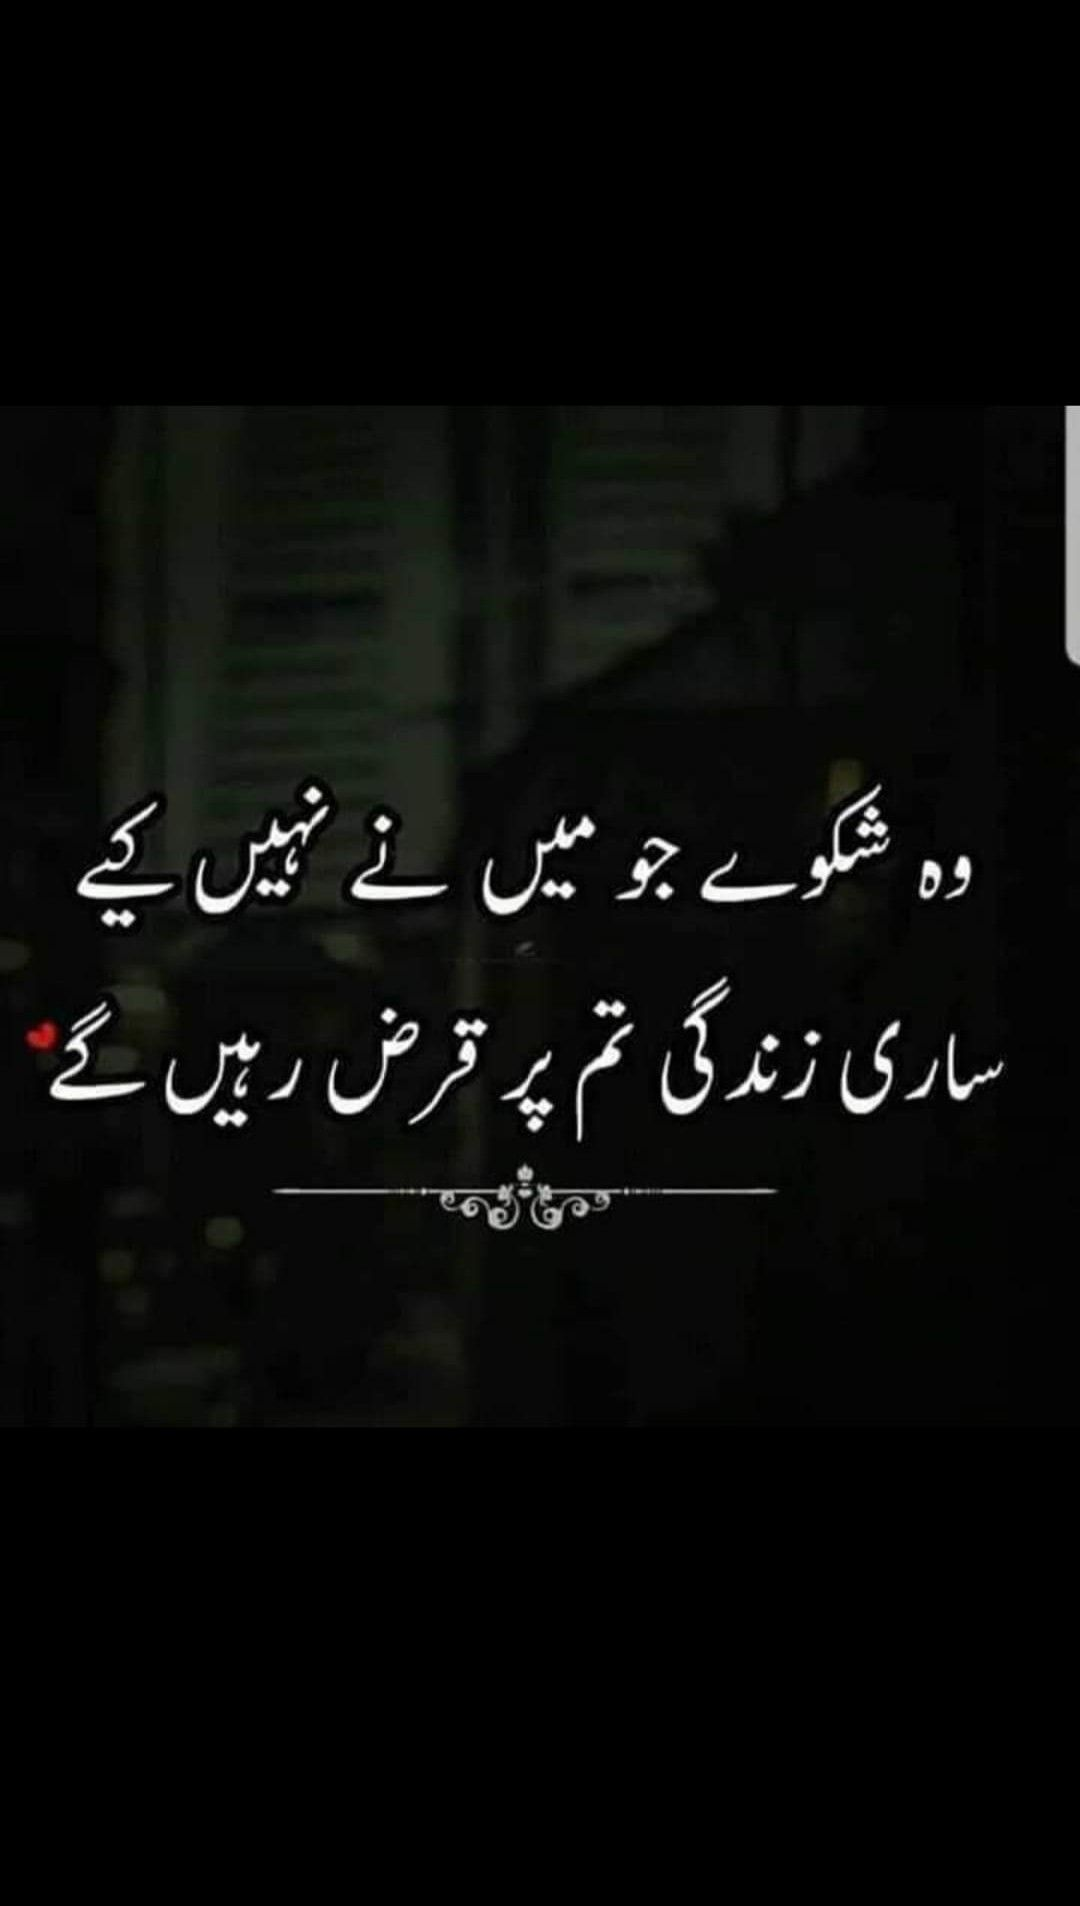 Pin By Syeda Fatima On Syeda S Collection Urdu Funny Quotes Death Poetry Deep Words